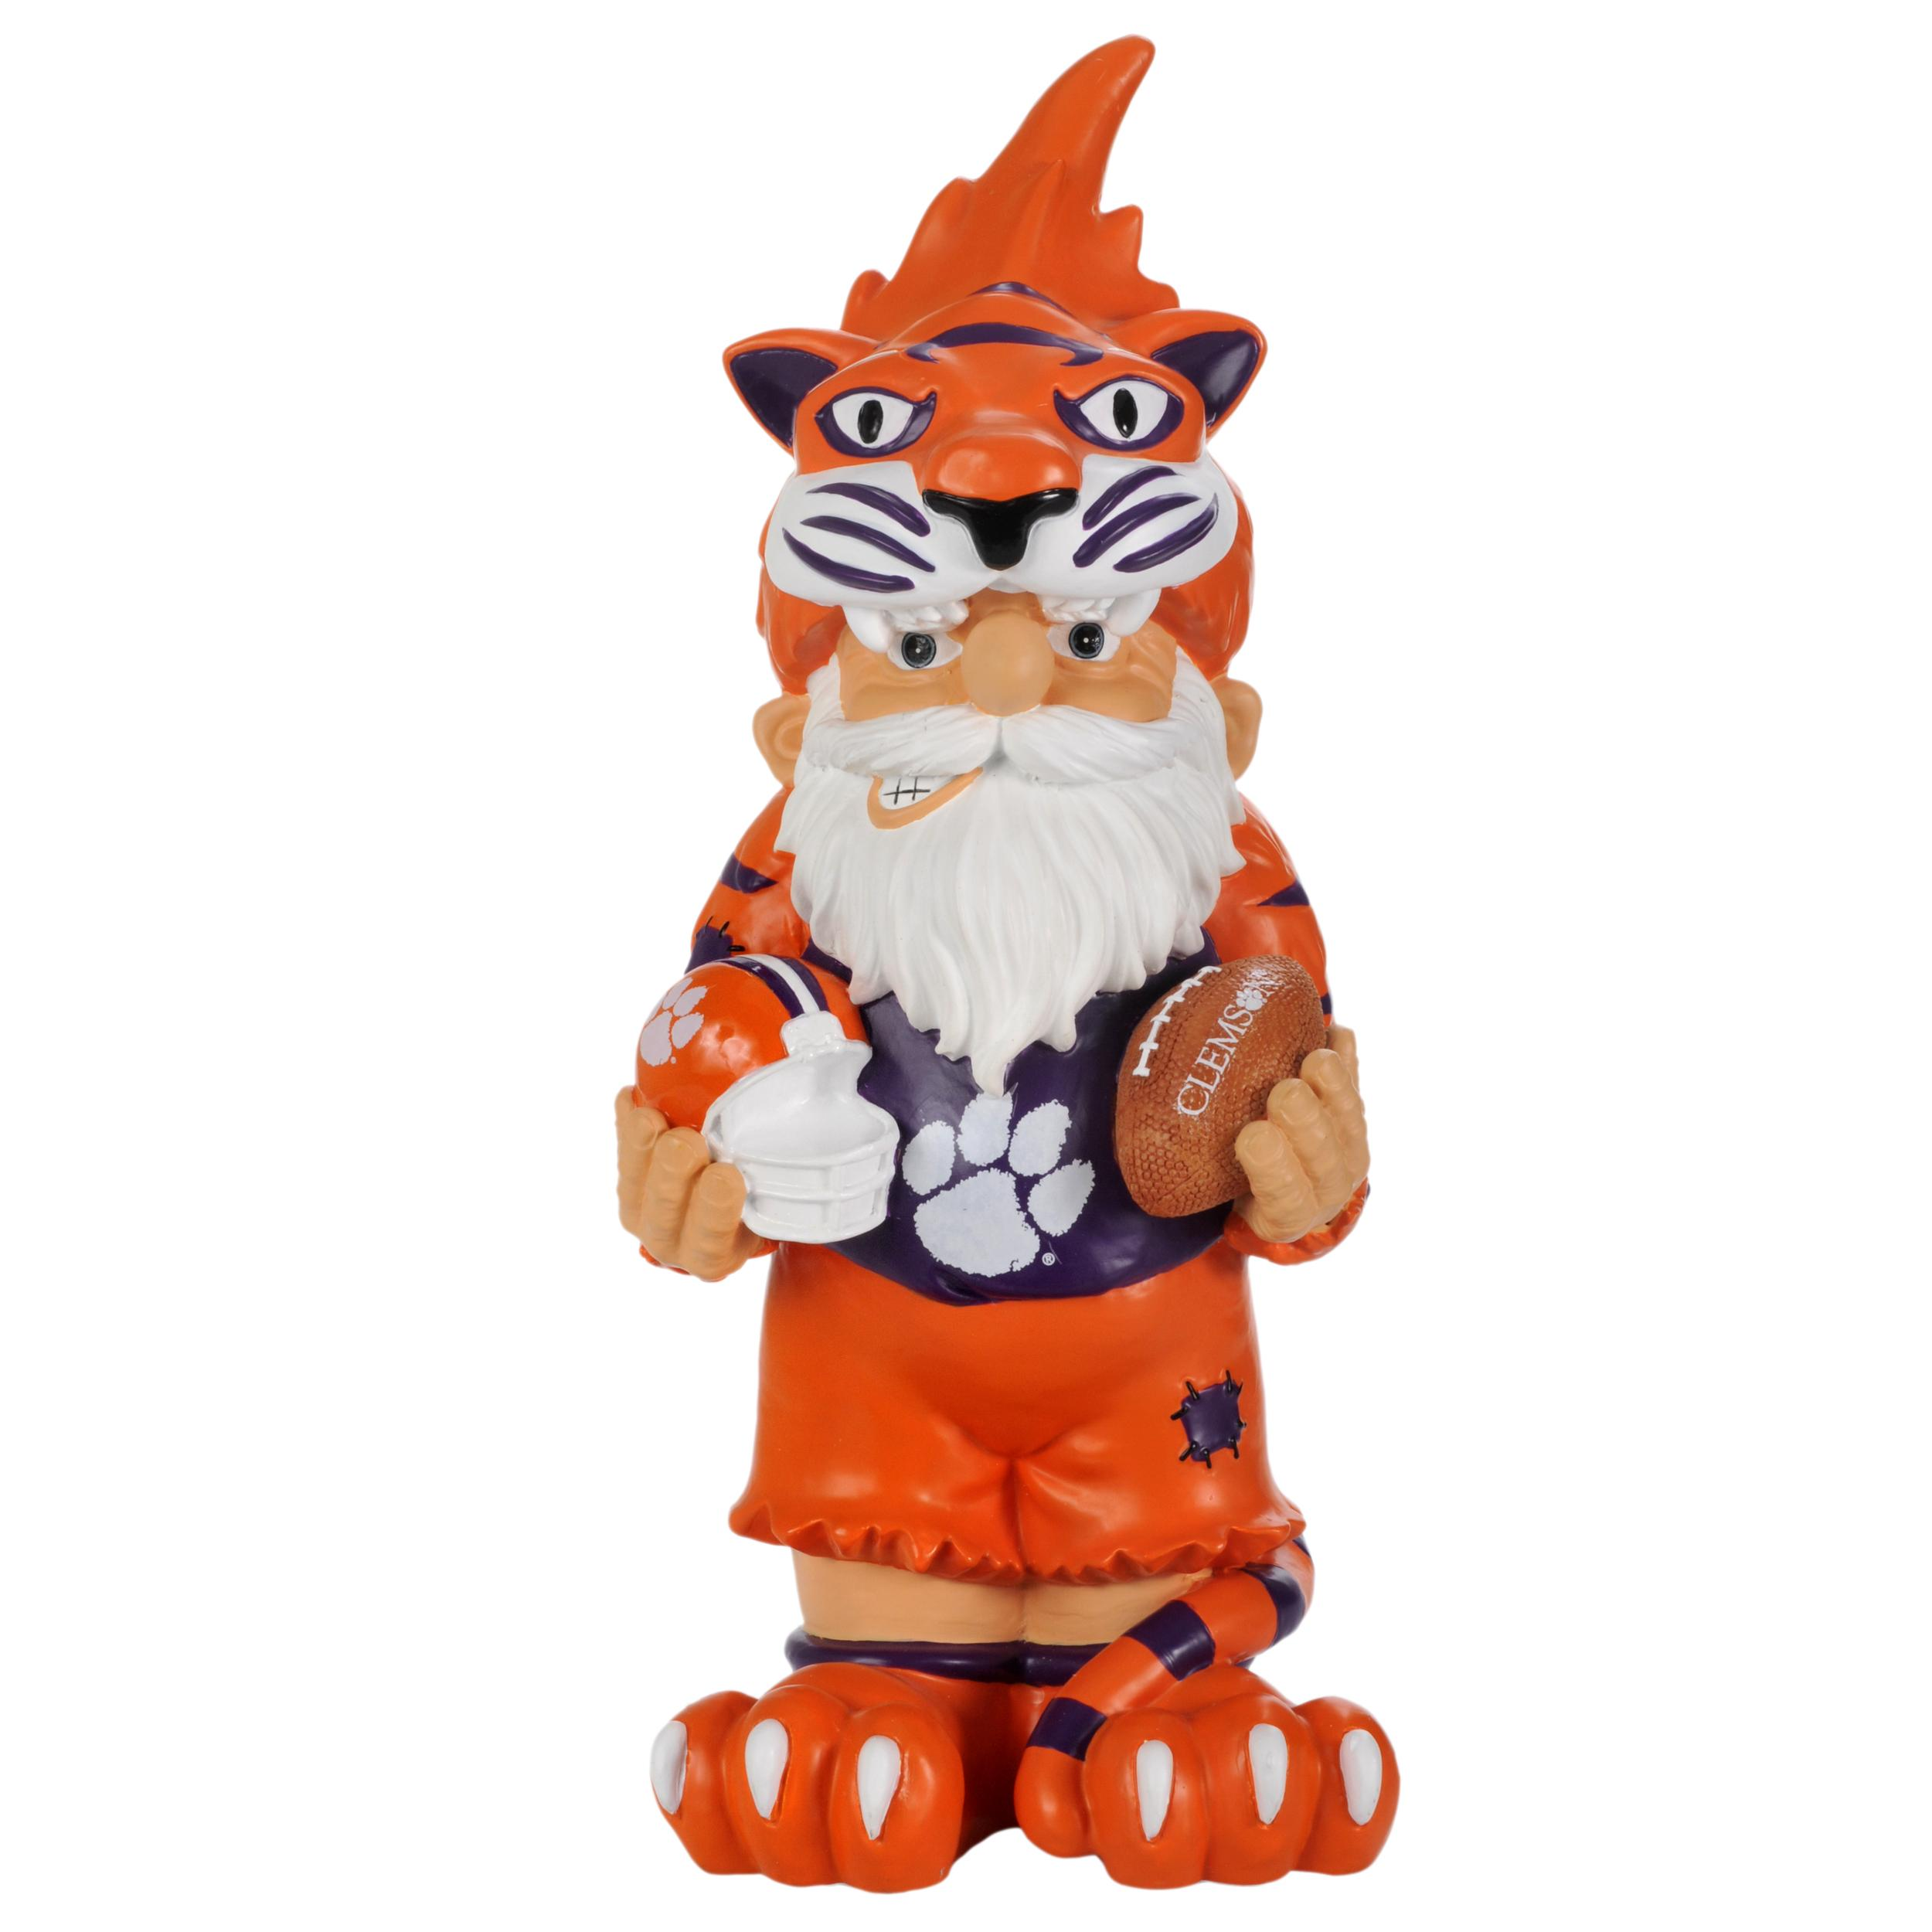 Clemson Tigers 11-inch Thematic Garden Gnome - Thumbnail 2